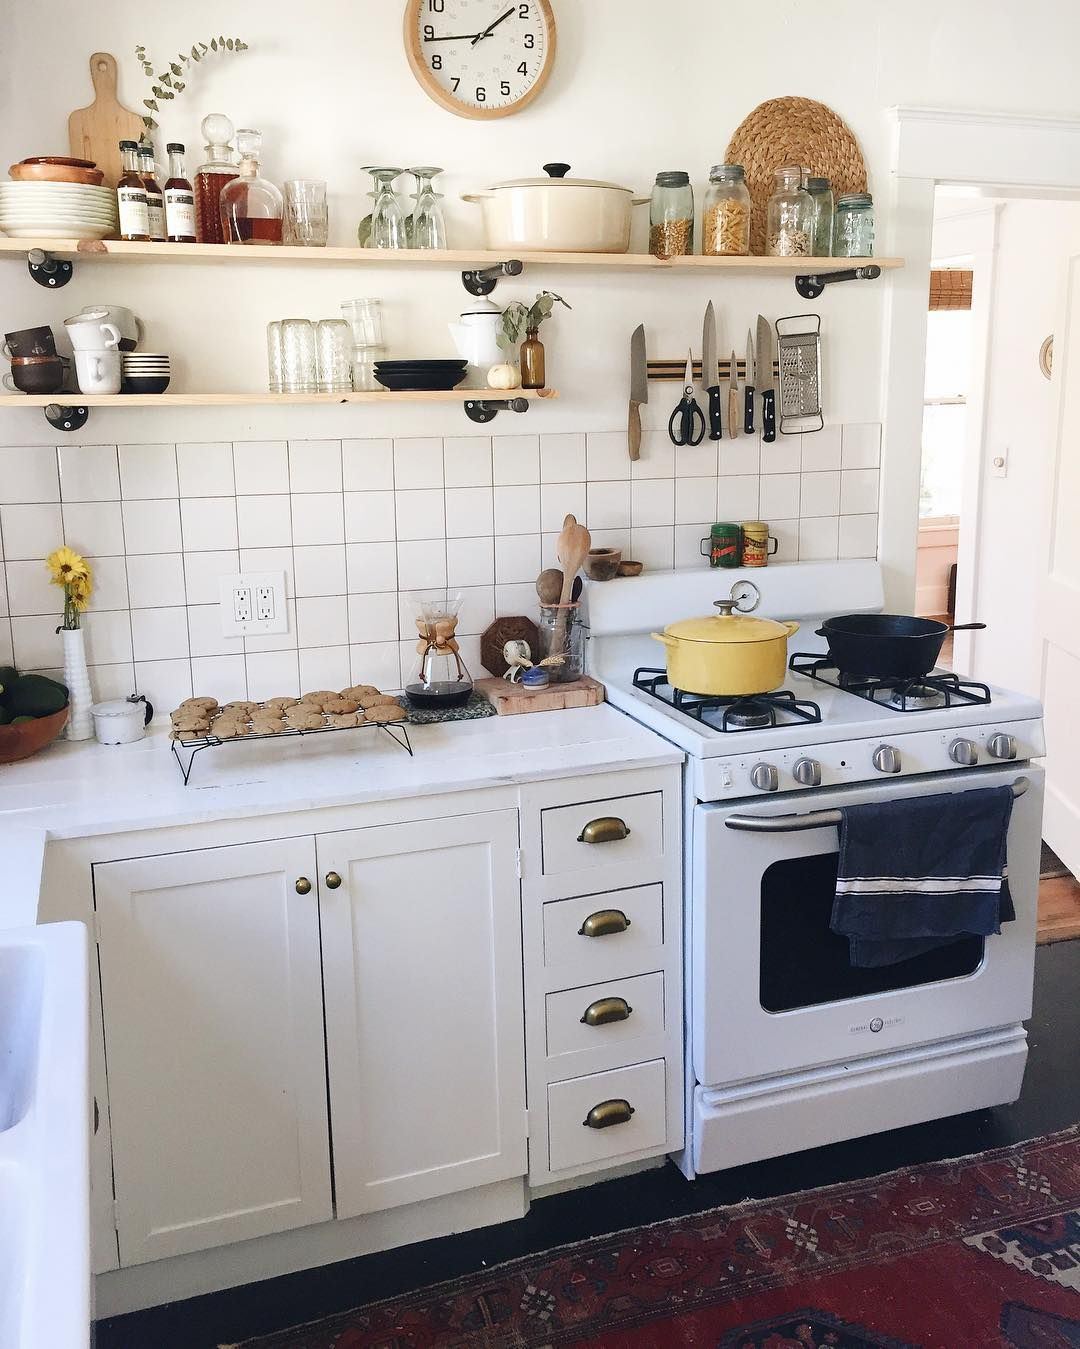 Tiny kitchen It can be tough to find a home for every utensil and ...